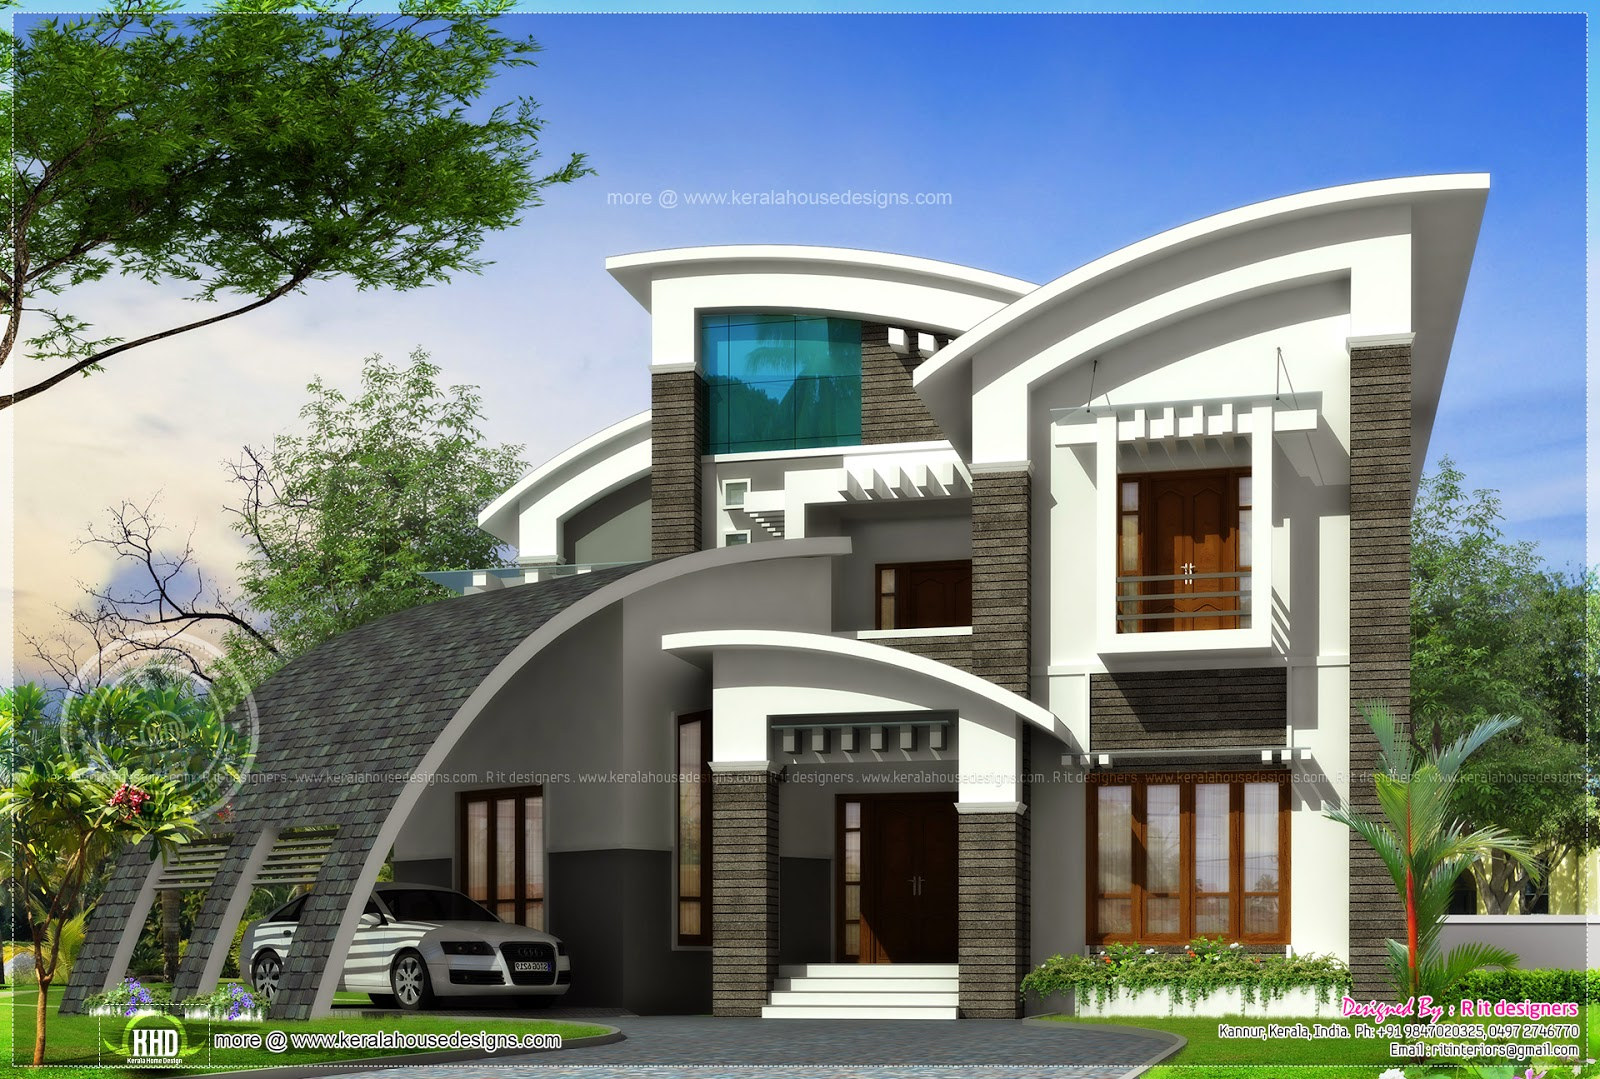 Super luxury ultra modern house design kerala home for Modern house website